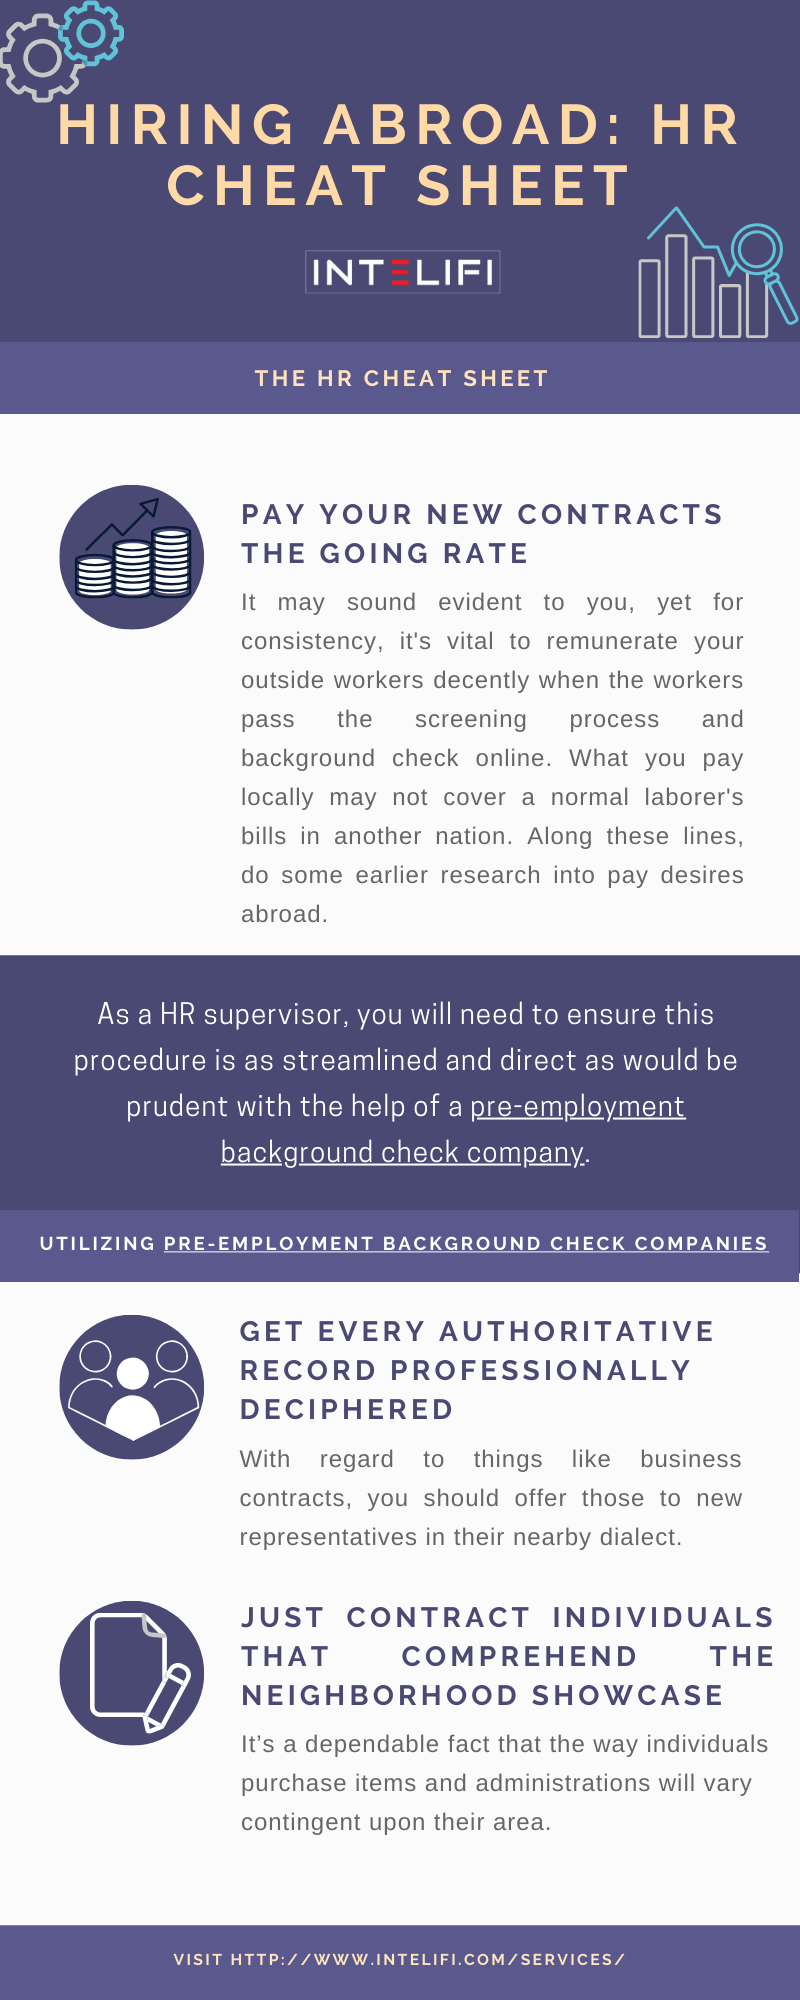 Hiring Abroad Hr Cheat Sheet In 2020 Employment Background Check Hiring Cheating